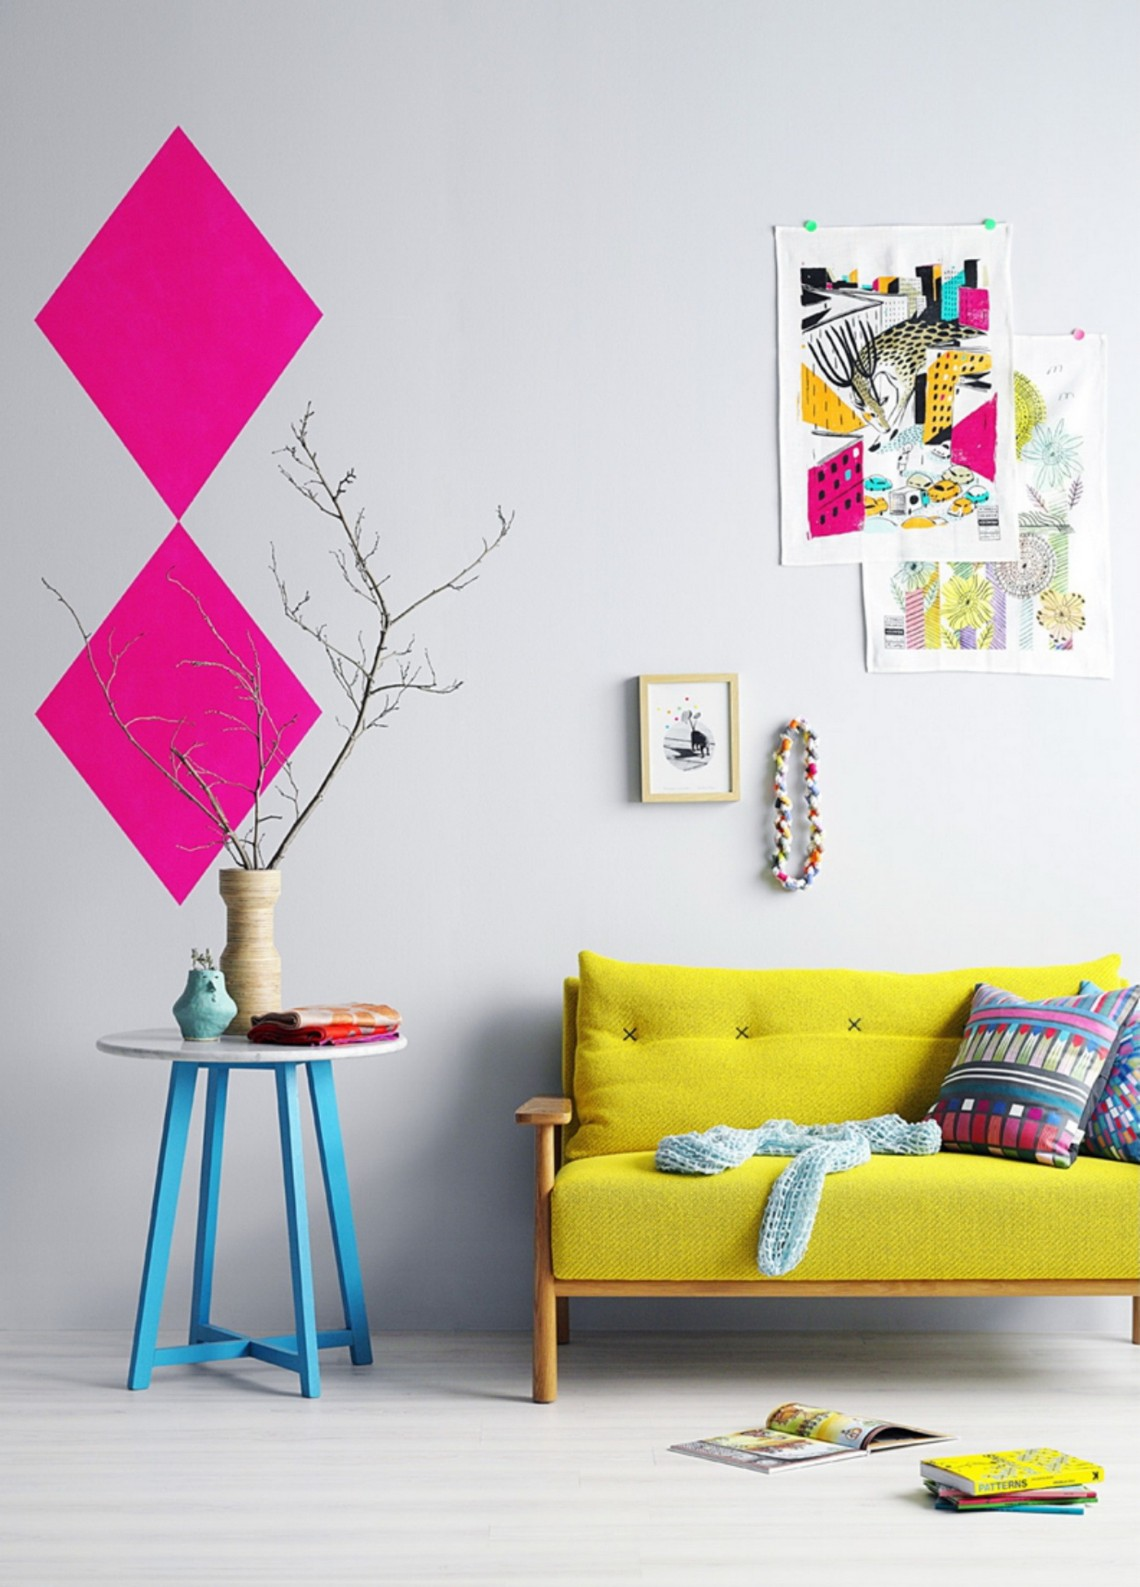 Trendy Color Schemes To Decorate Your Living Room living room Trendy Color Schemes To Decorate Your Living Room Trendy Color Schemes To Decorate Your Living Room 2